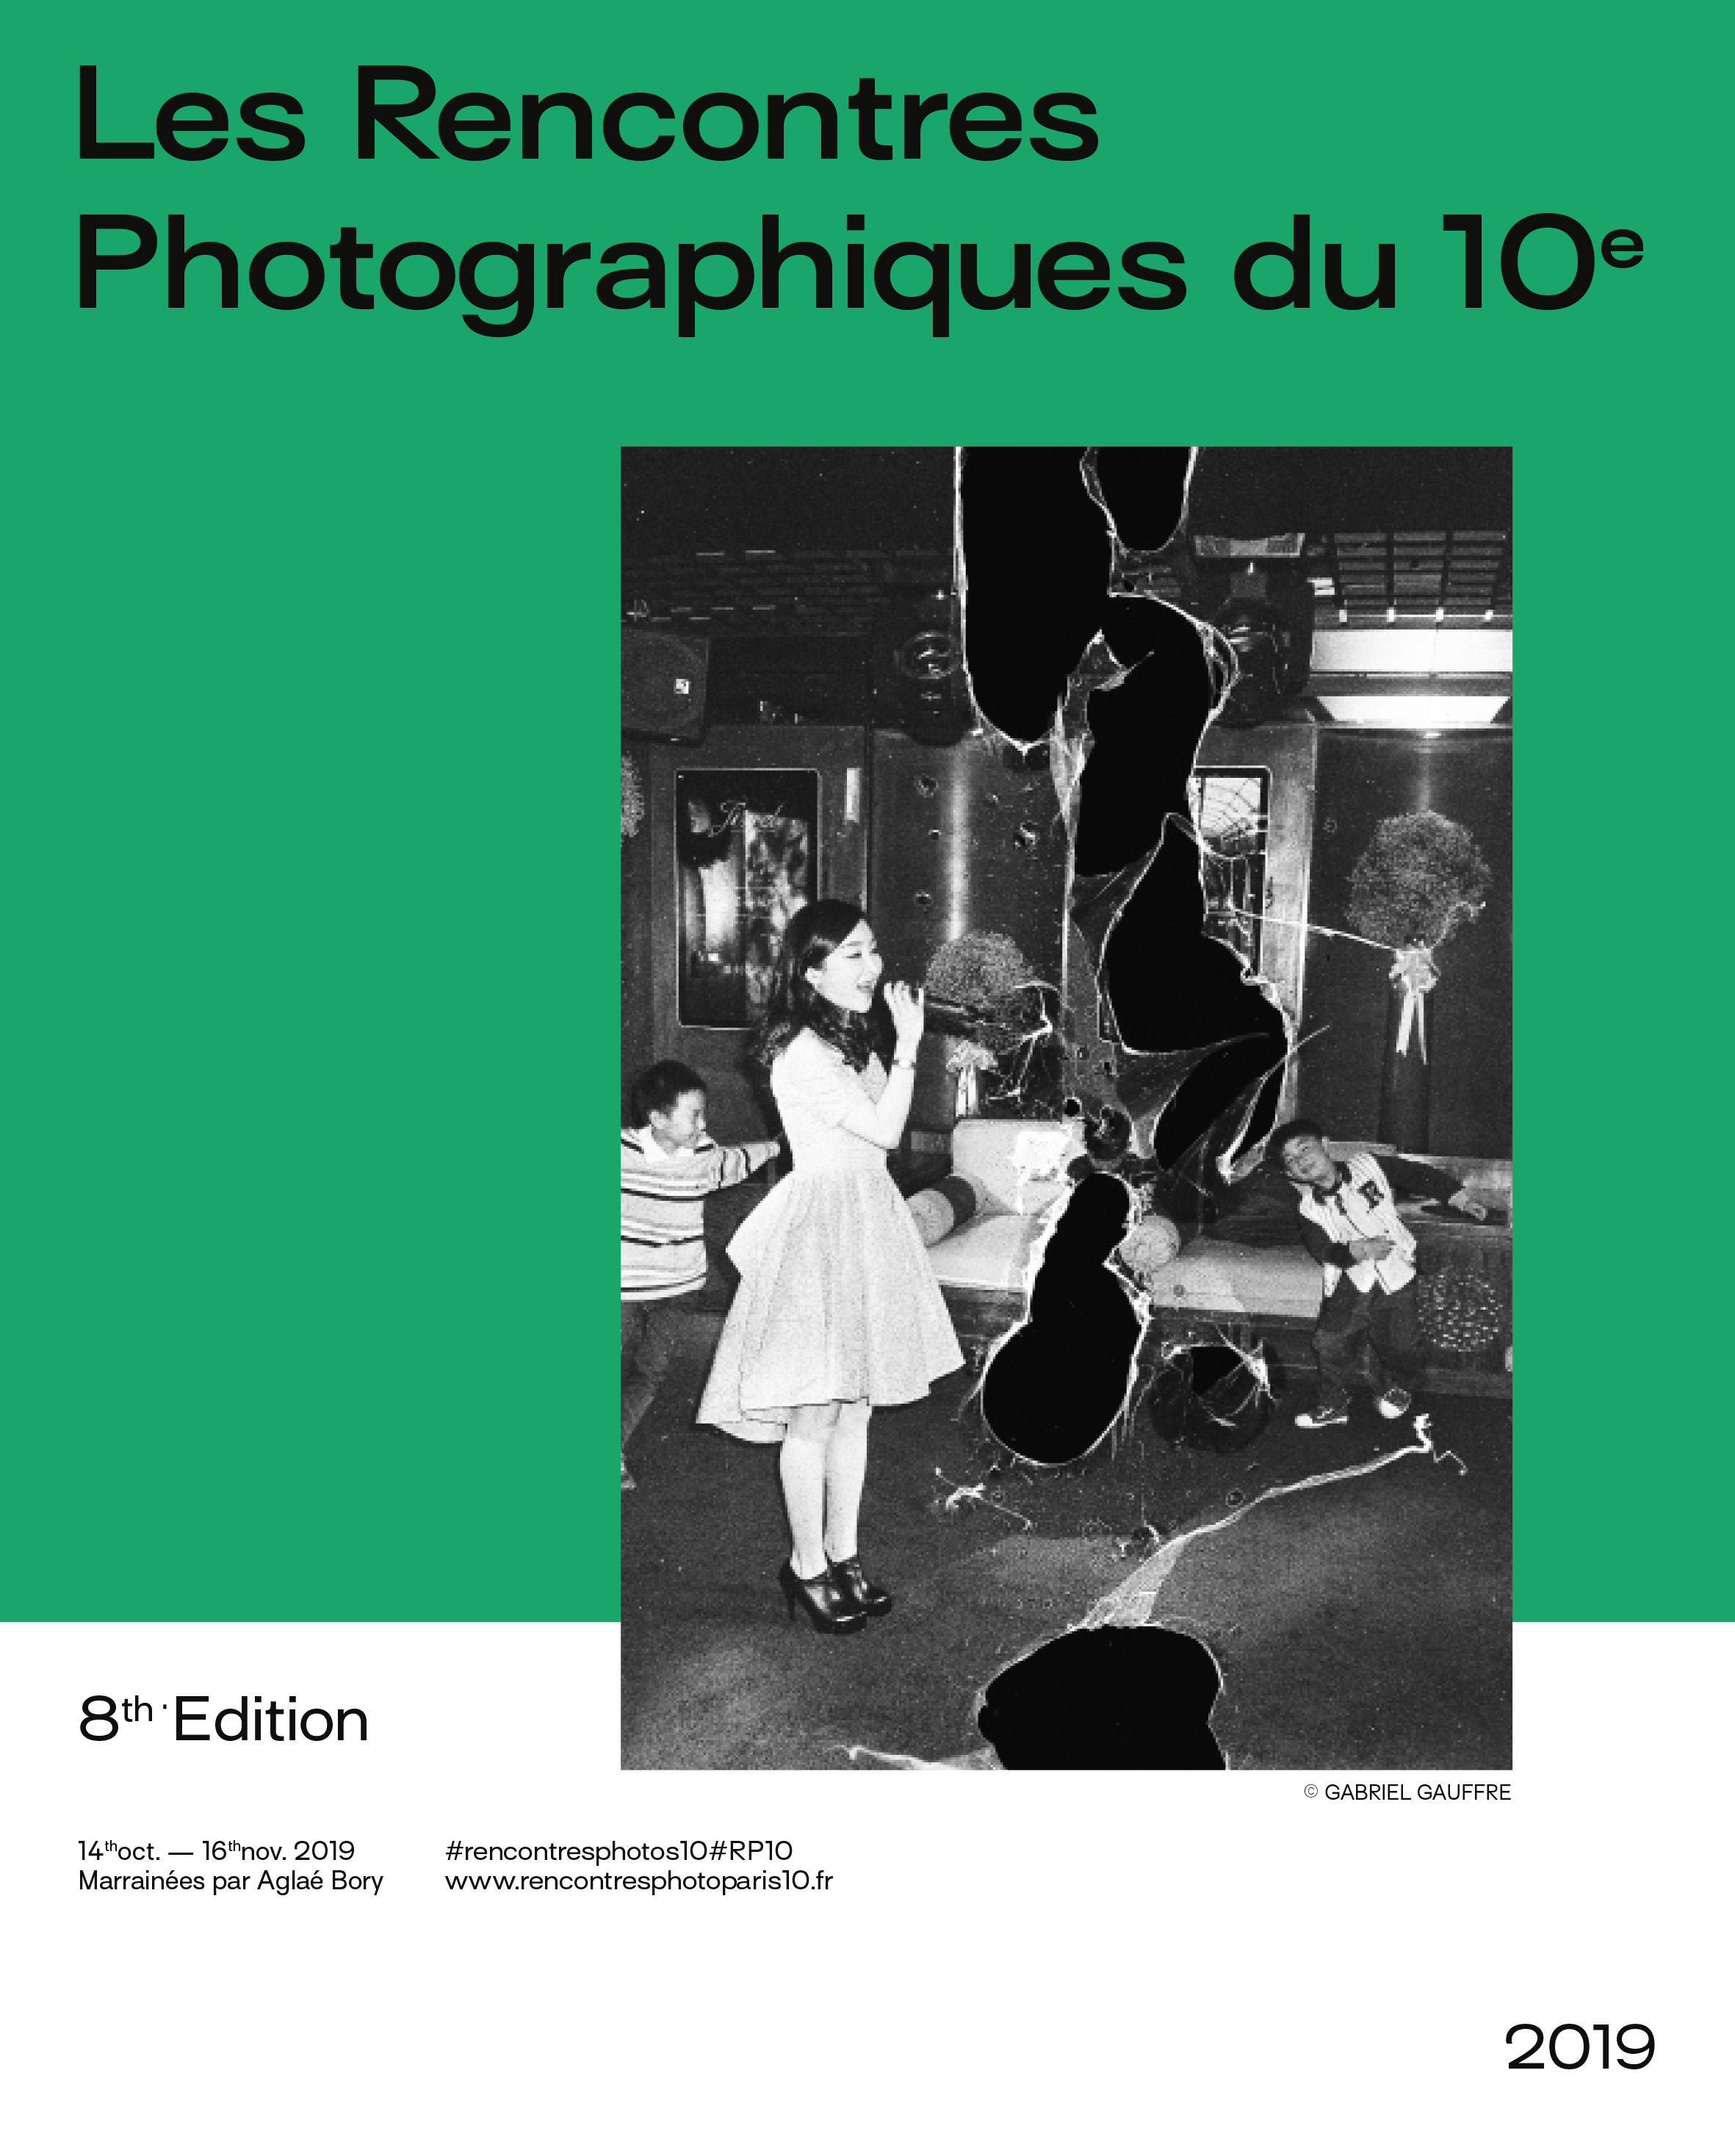 rencontres-photographiques-10-paris-2019-photography-of-china.jpg